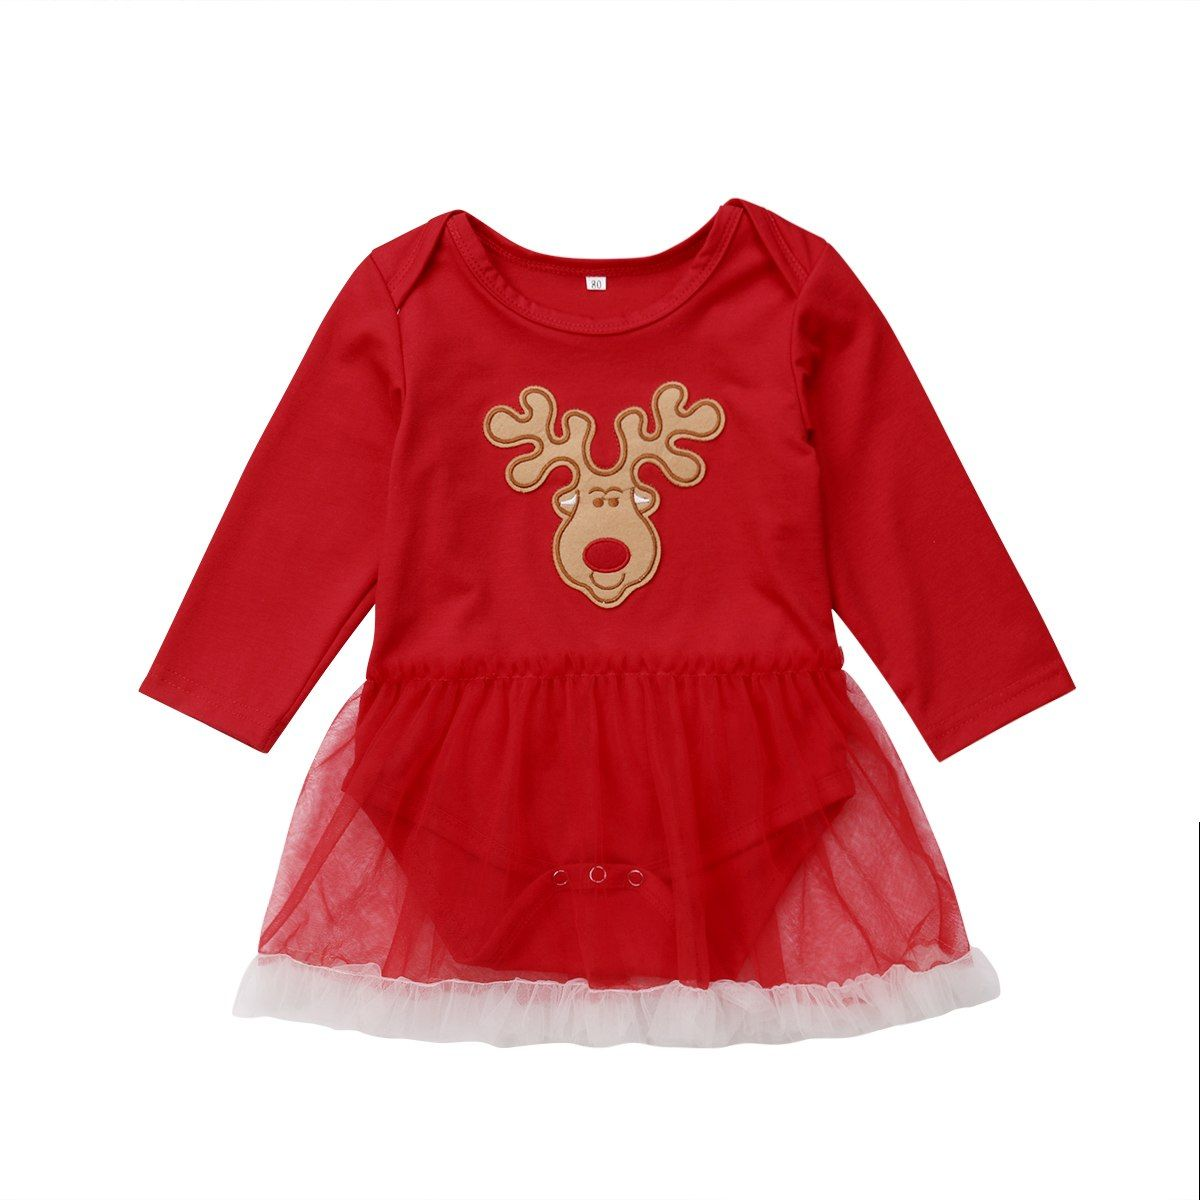 c1ffda571c8b2 Casual Newborn Infant Baby Girls Long Sleeve Cotton Red Lace ...